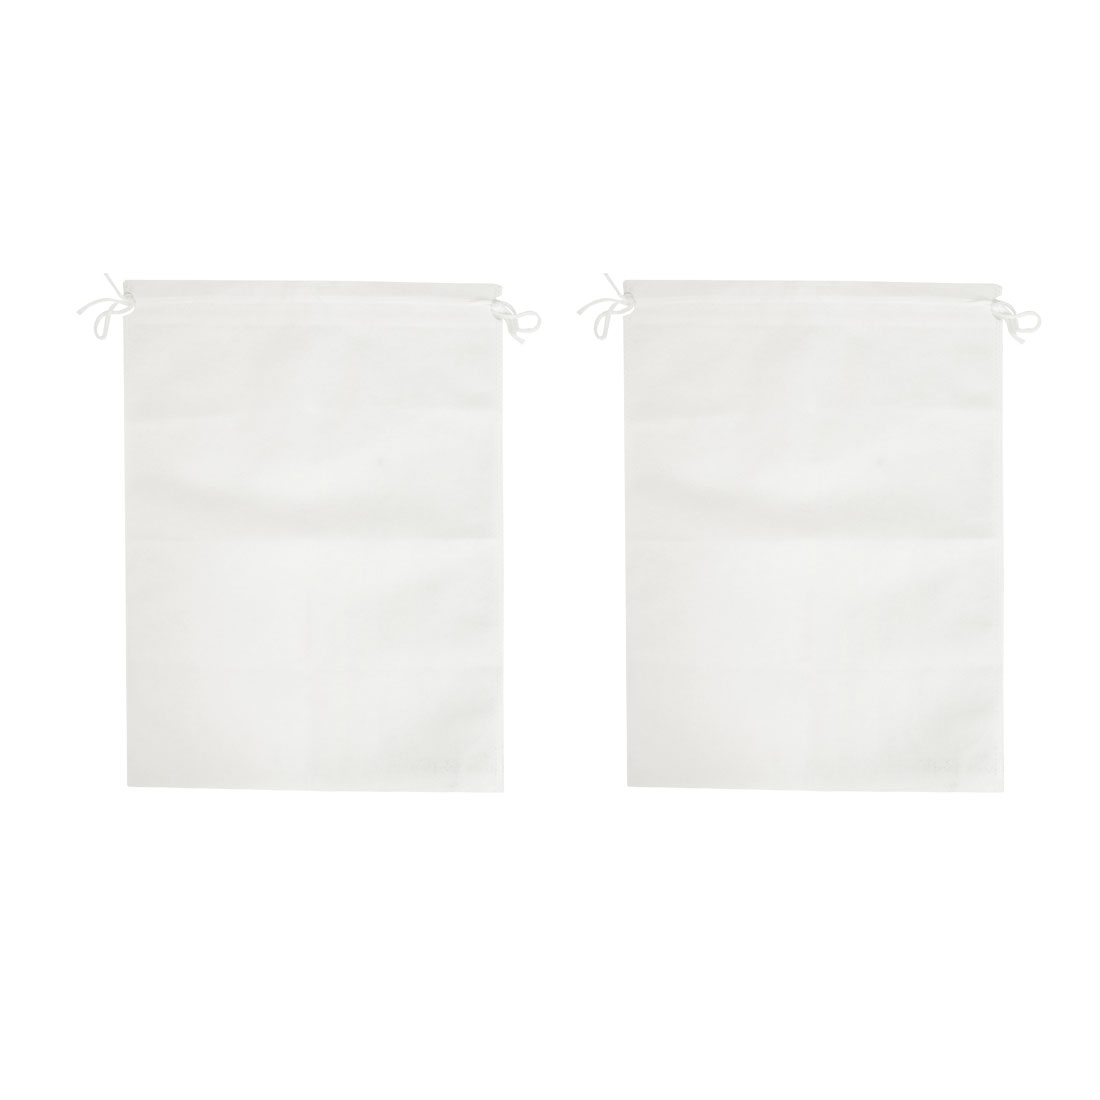 Traveling Garment Suit Cover Protector Drawstring Bag 40 x 30cm White 2pcs